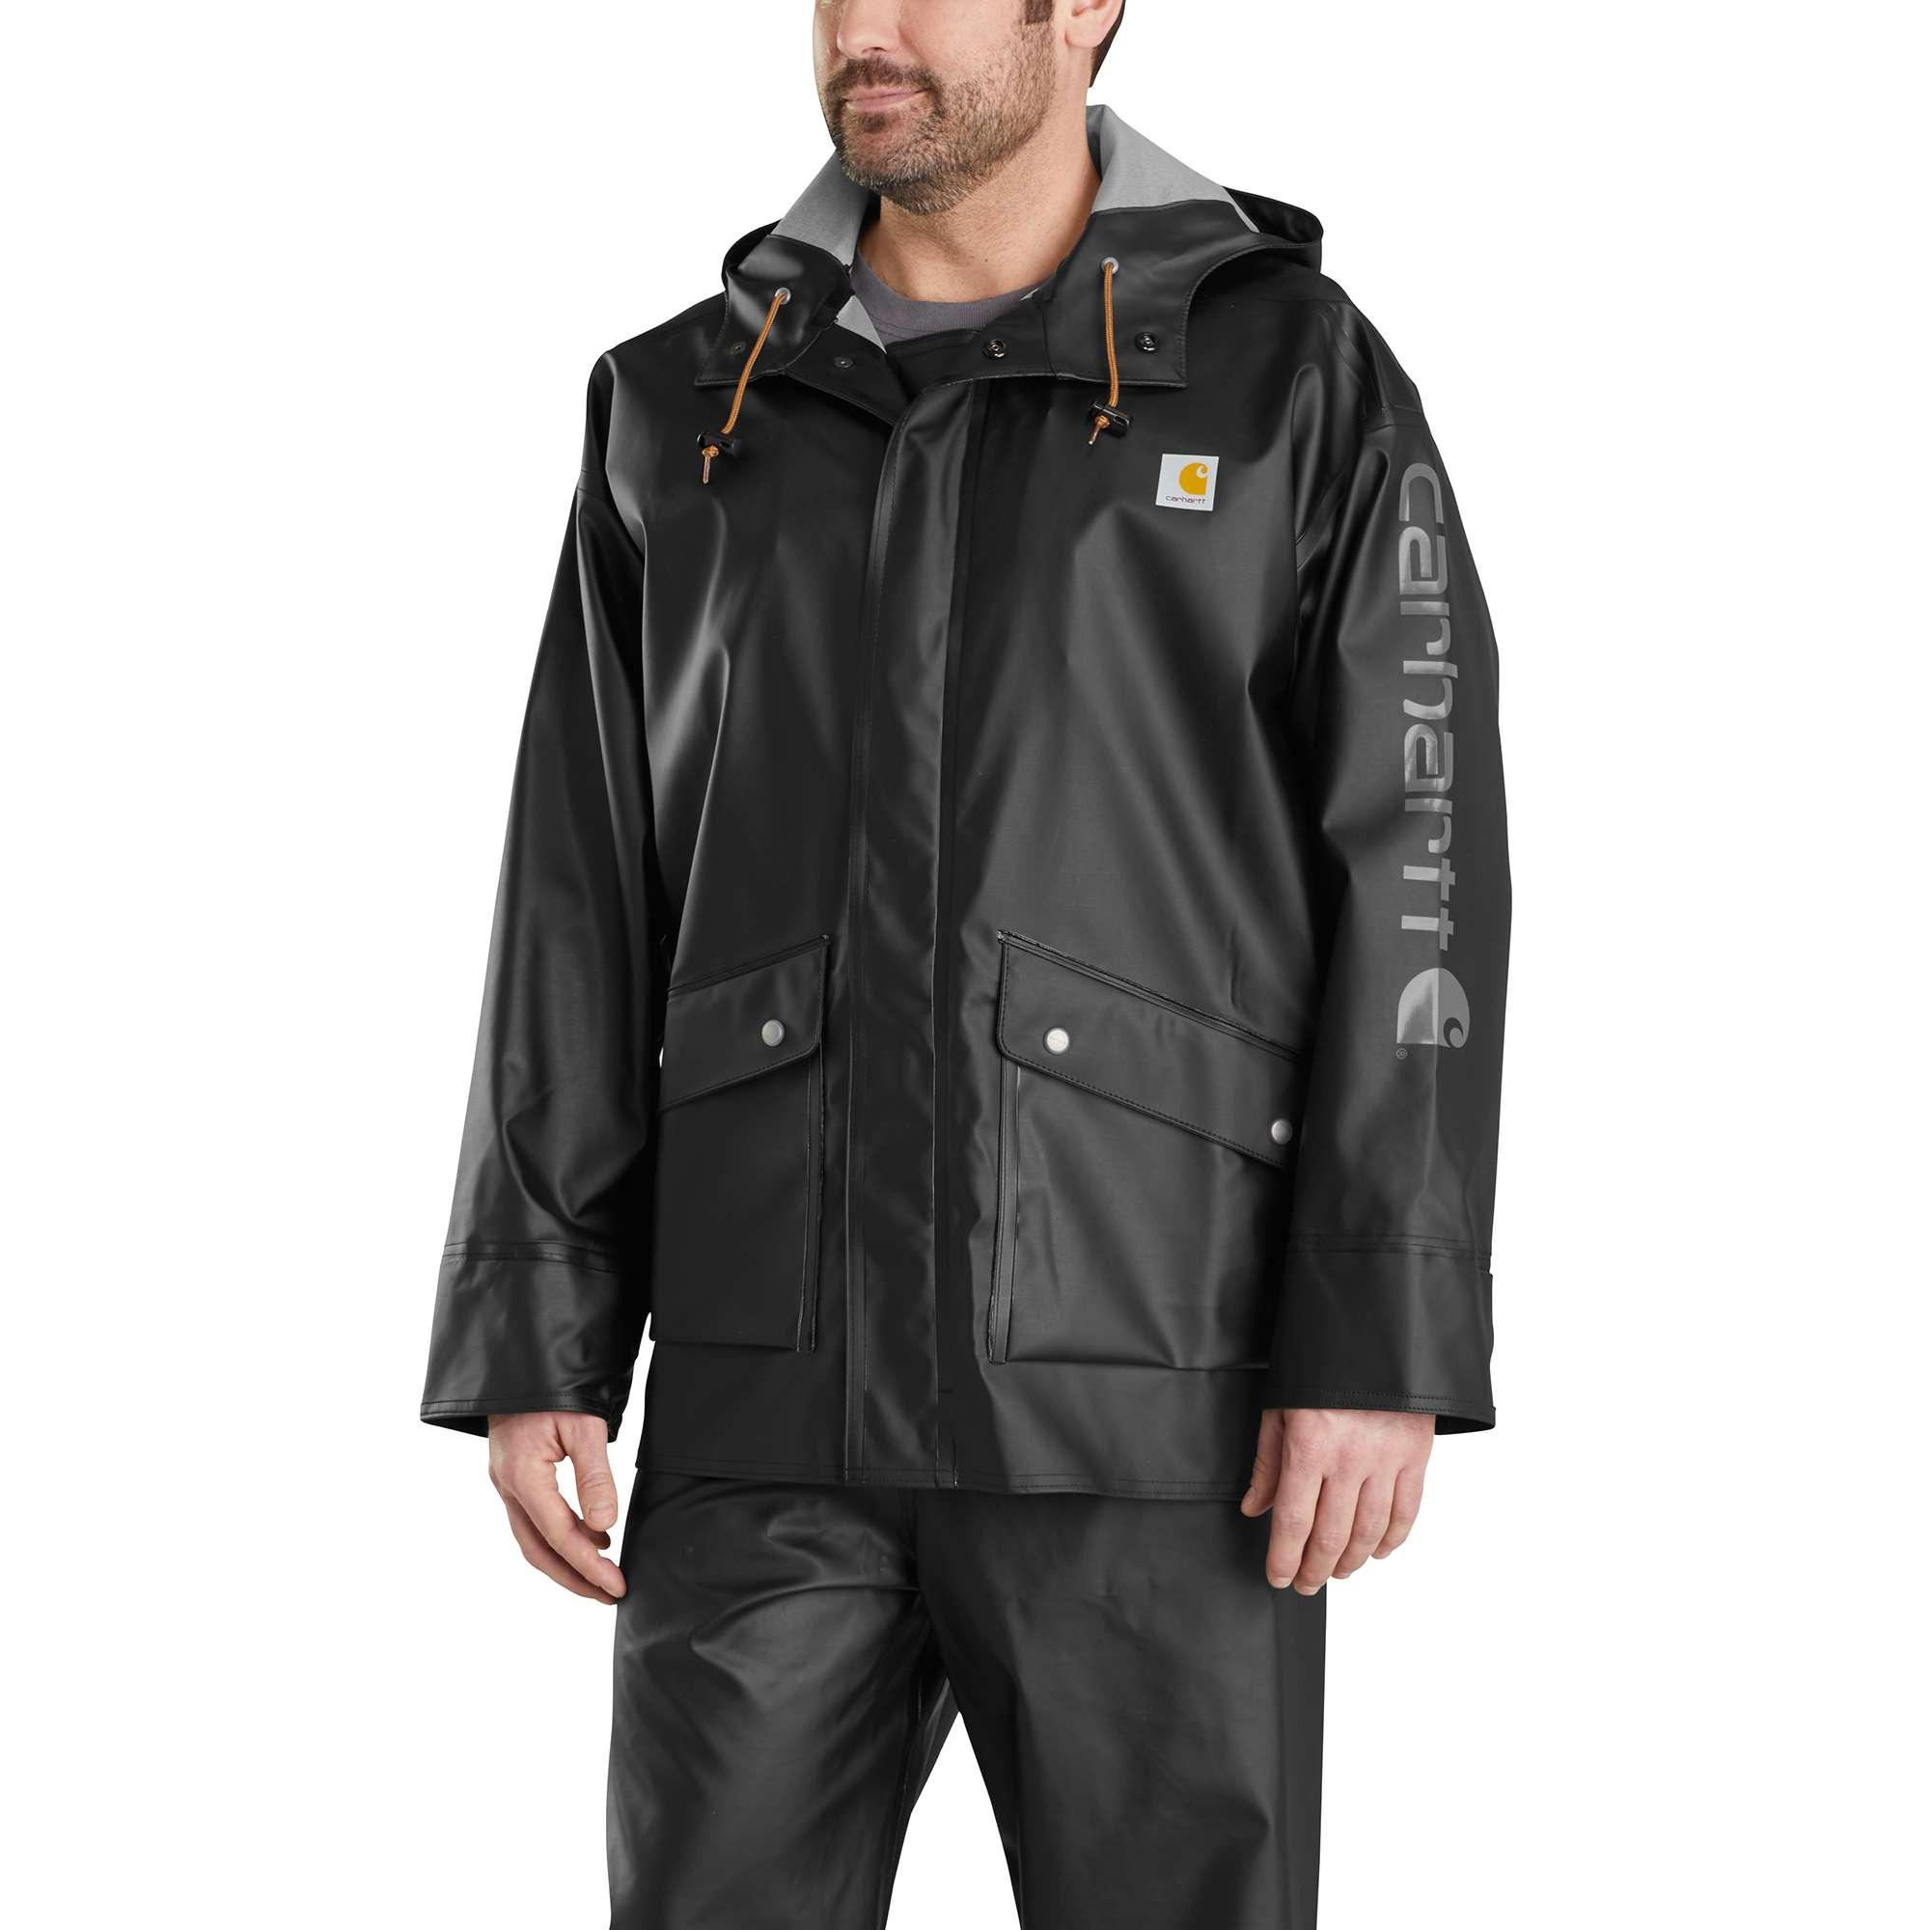 Midweight Waterproof Rainstorm Jacket